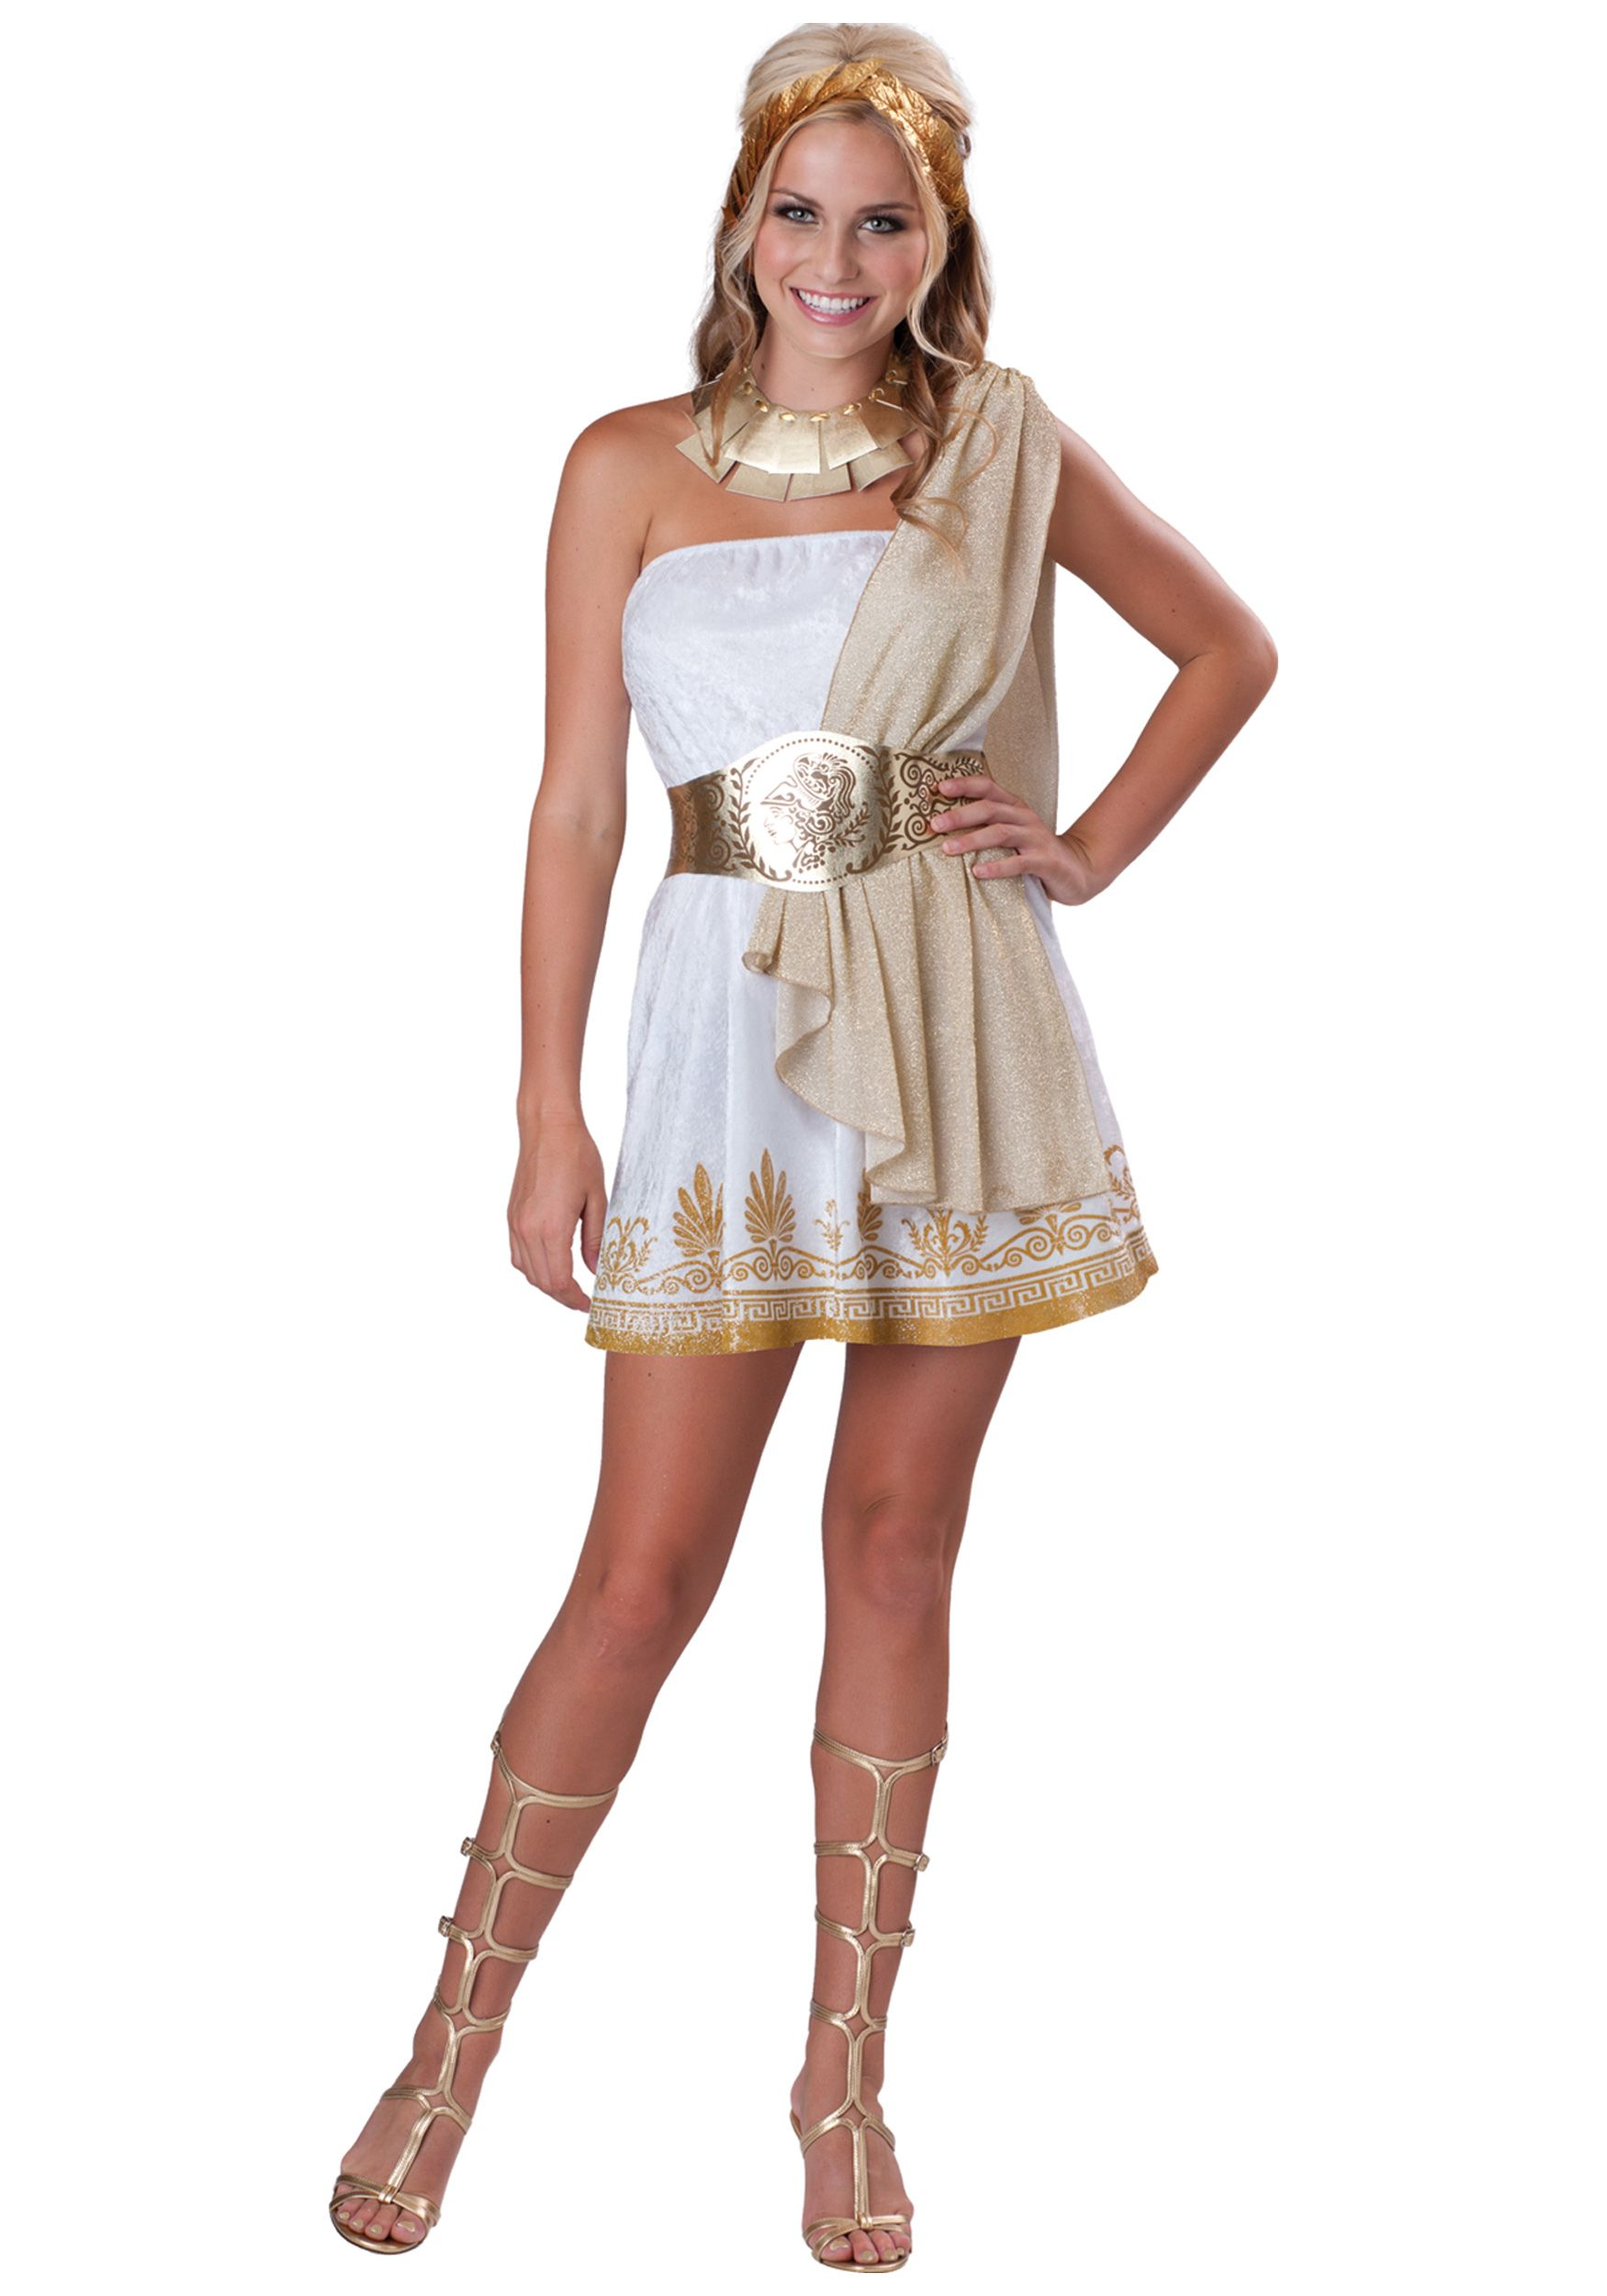 Hollowen costumes halloween costume ideas historical costumes incharacter costumes teen glitzy goddess costume whitegold large dress with attached shoulder drape printed belt necklace and headpiece with gold solutioingenieria Gallery